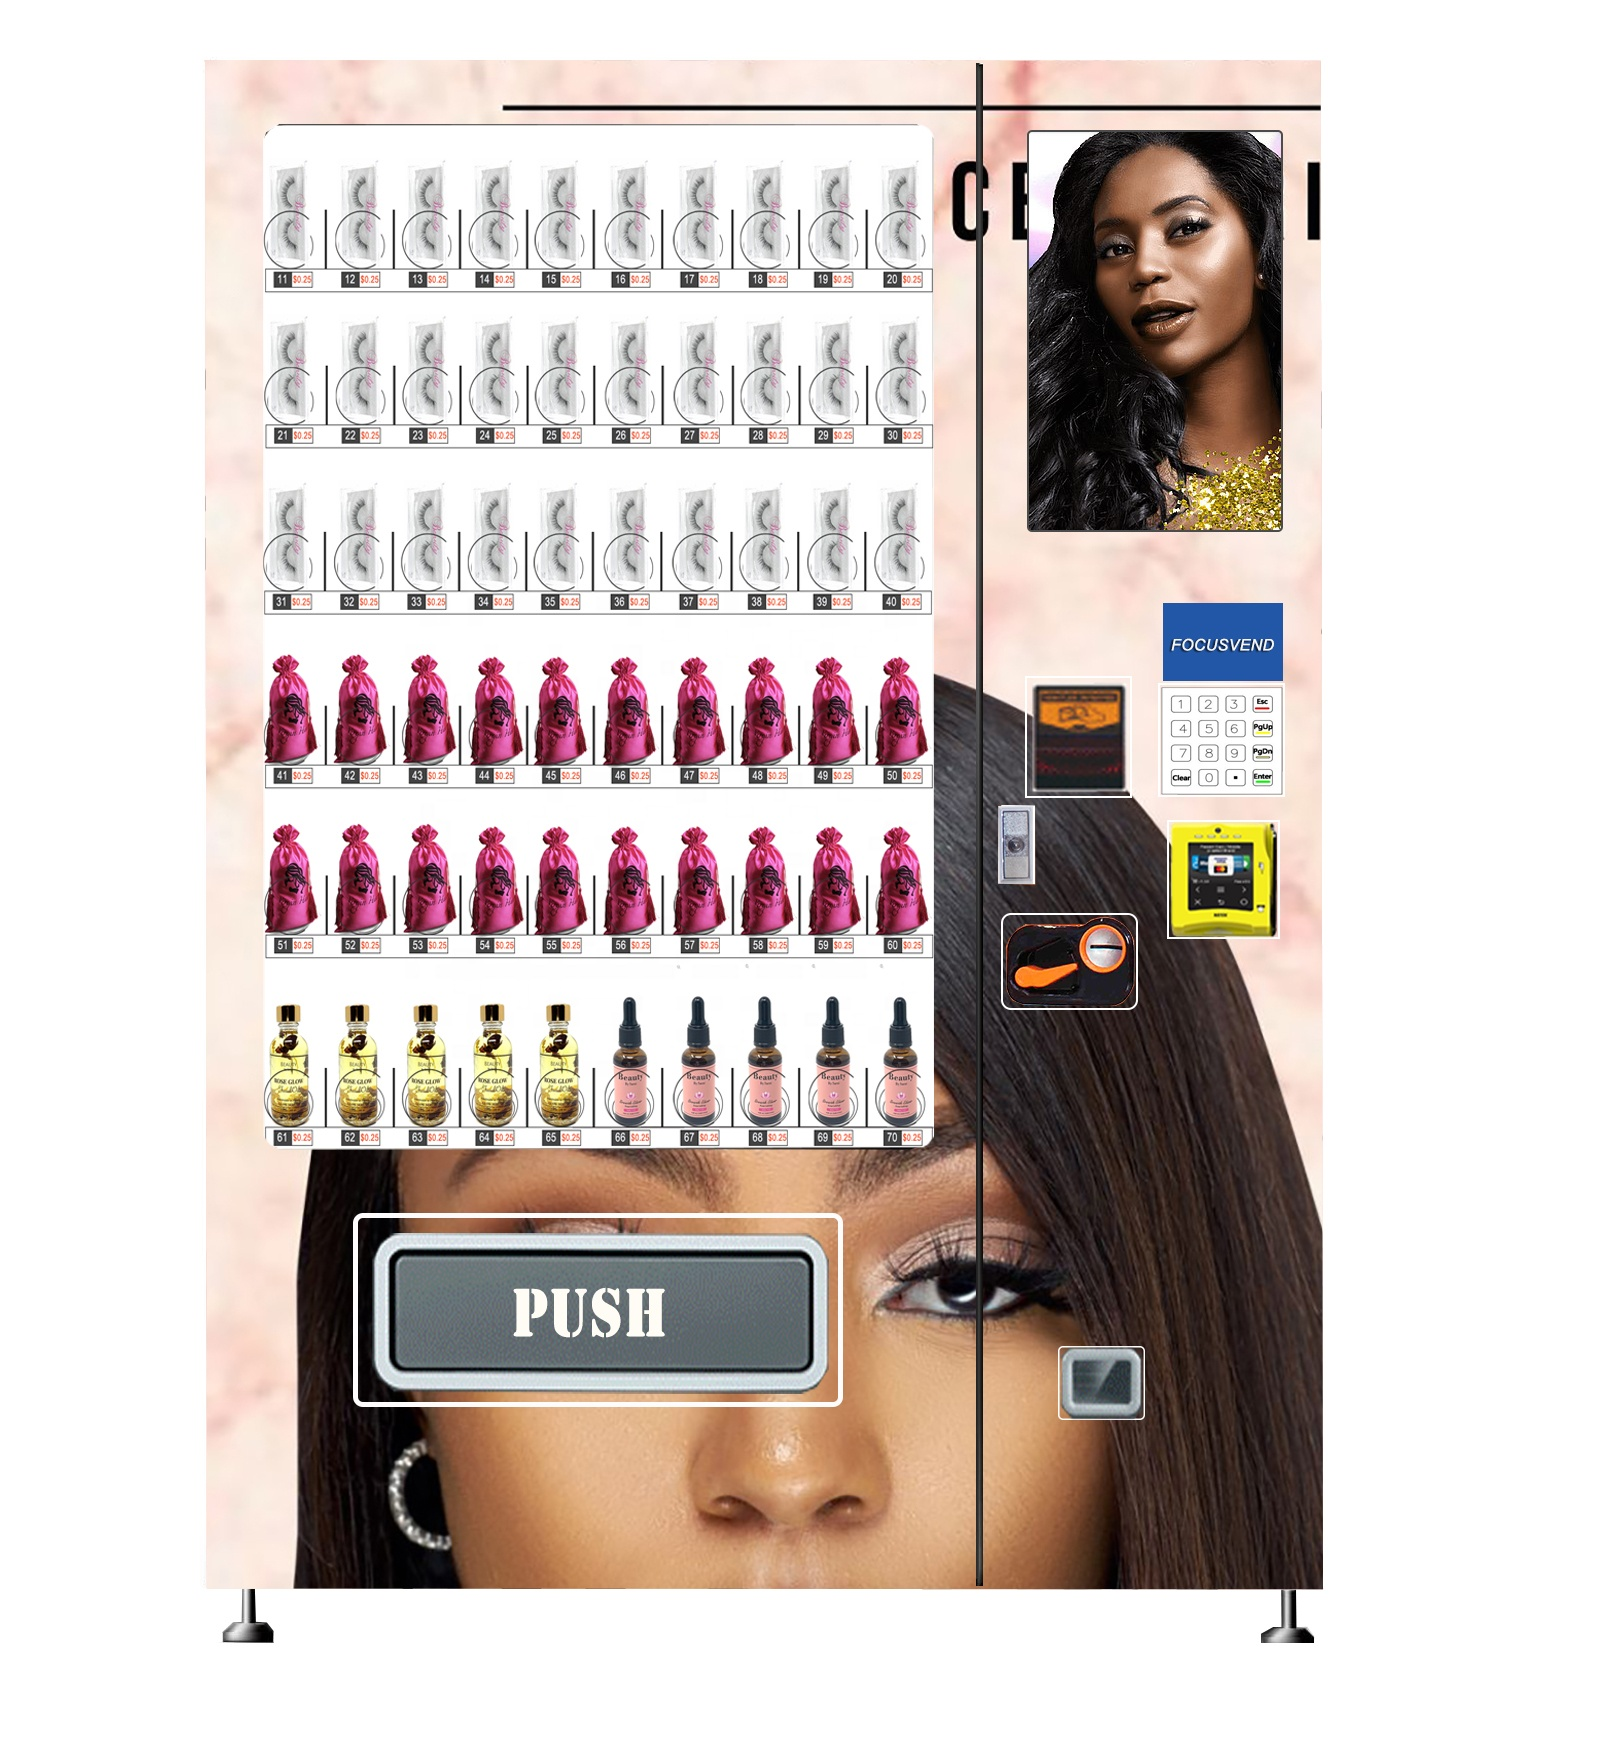 New cosmetic vending machines for wigs lipstick and perfume